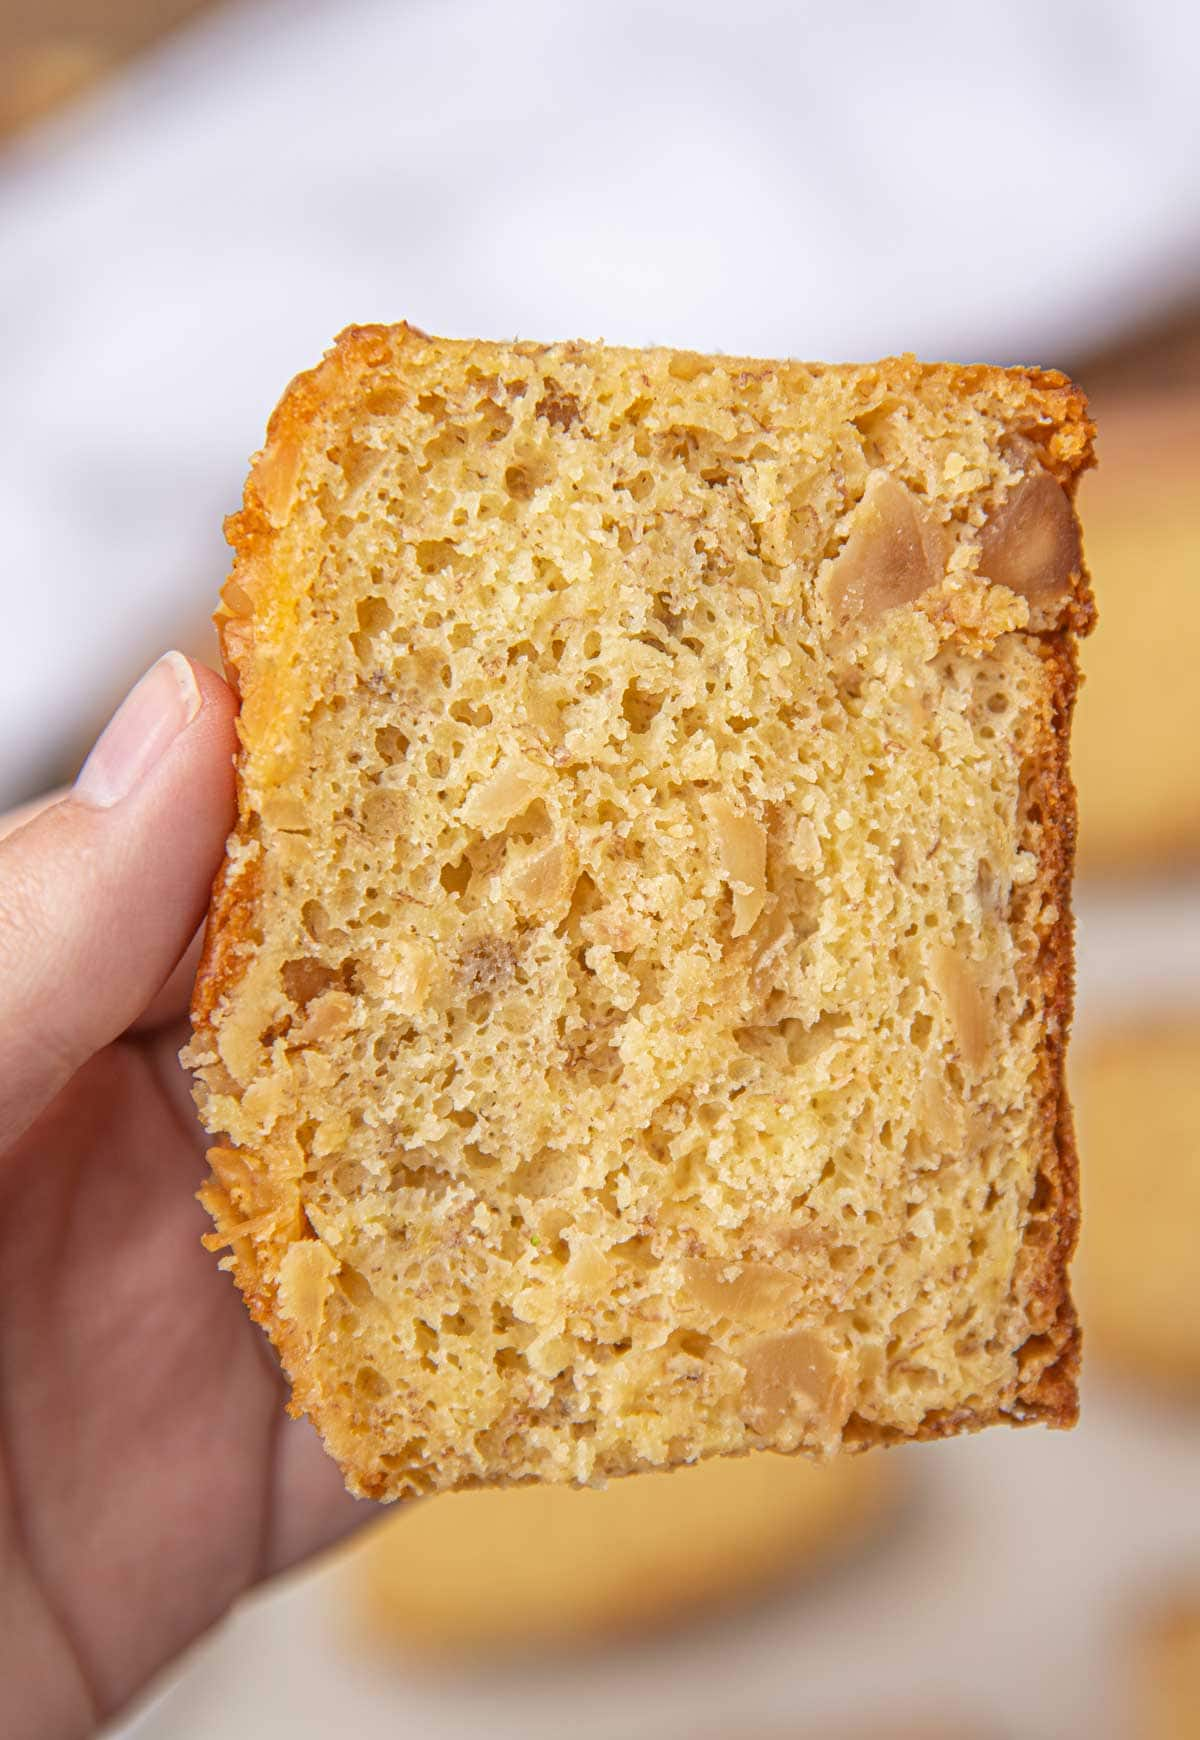 Slice of Macadamia Nut Banana Bread